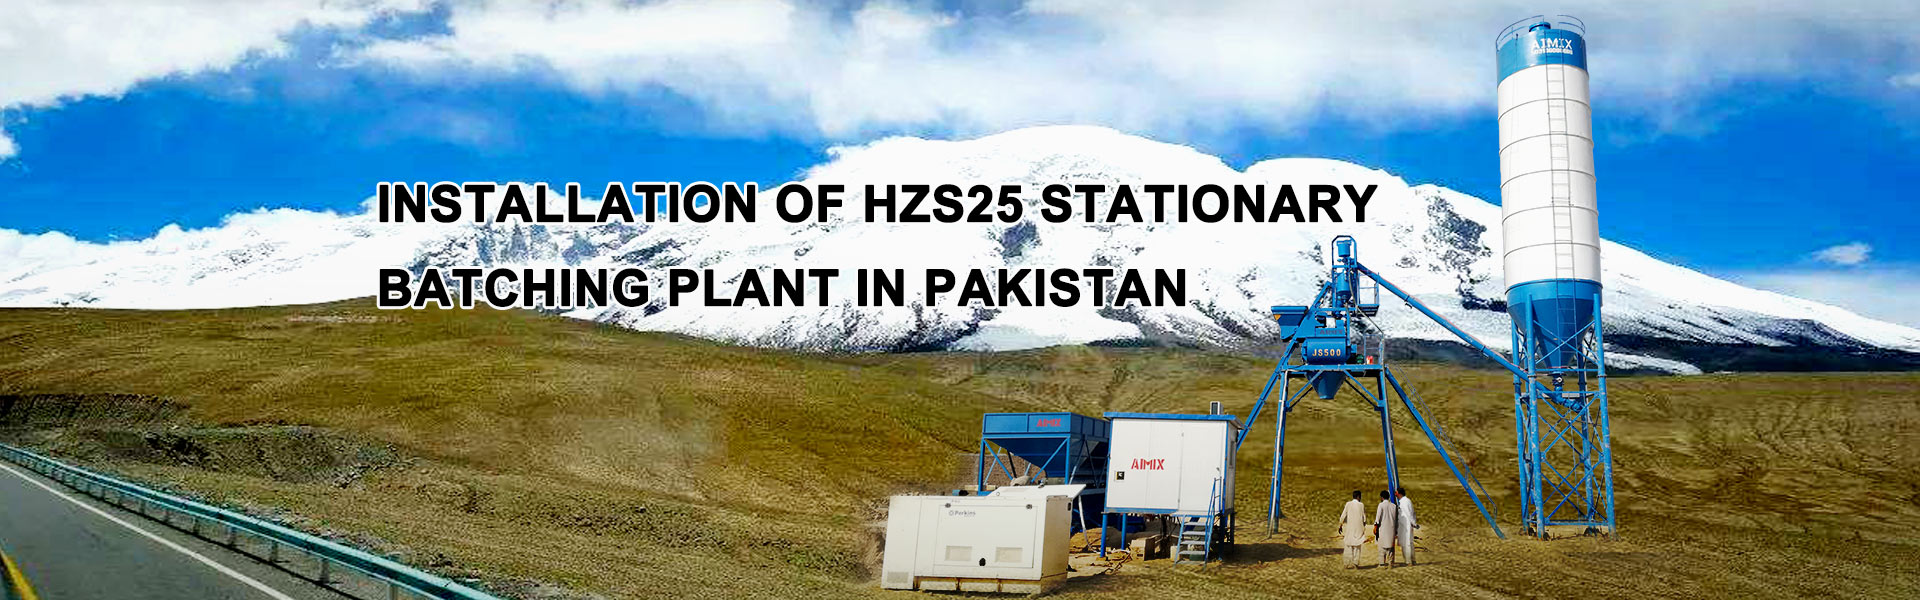 HZS25 stationary batching plant in Pakistan